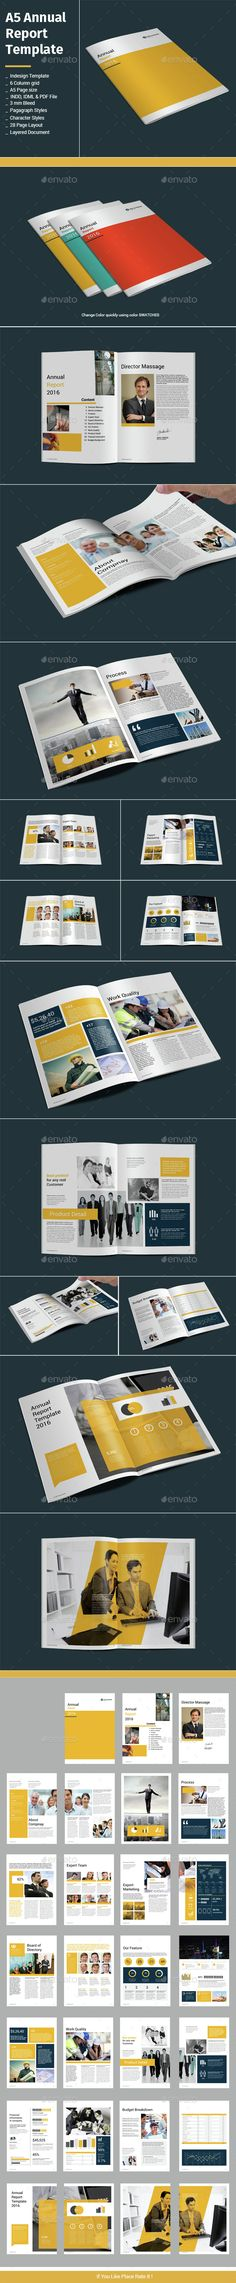 Annual Report InDesign Template v2 Indesign templates, Annual - annual report template design